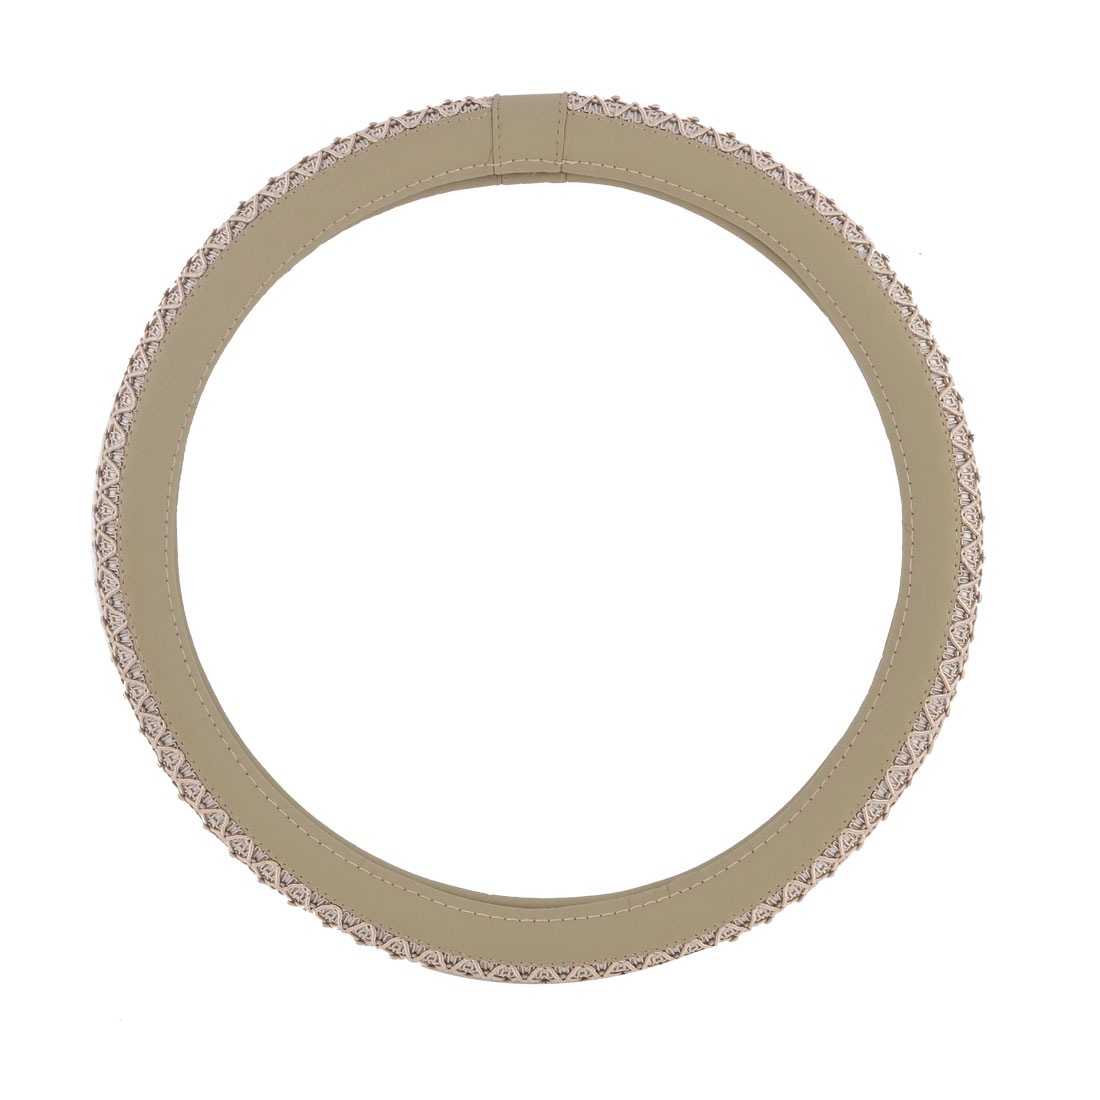 "Beige Nylon Textured Steering Wheel Guard Cover 1.5"" Dia for Auto Car Truck"